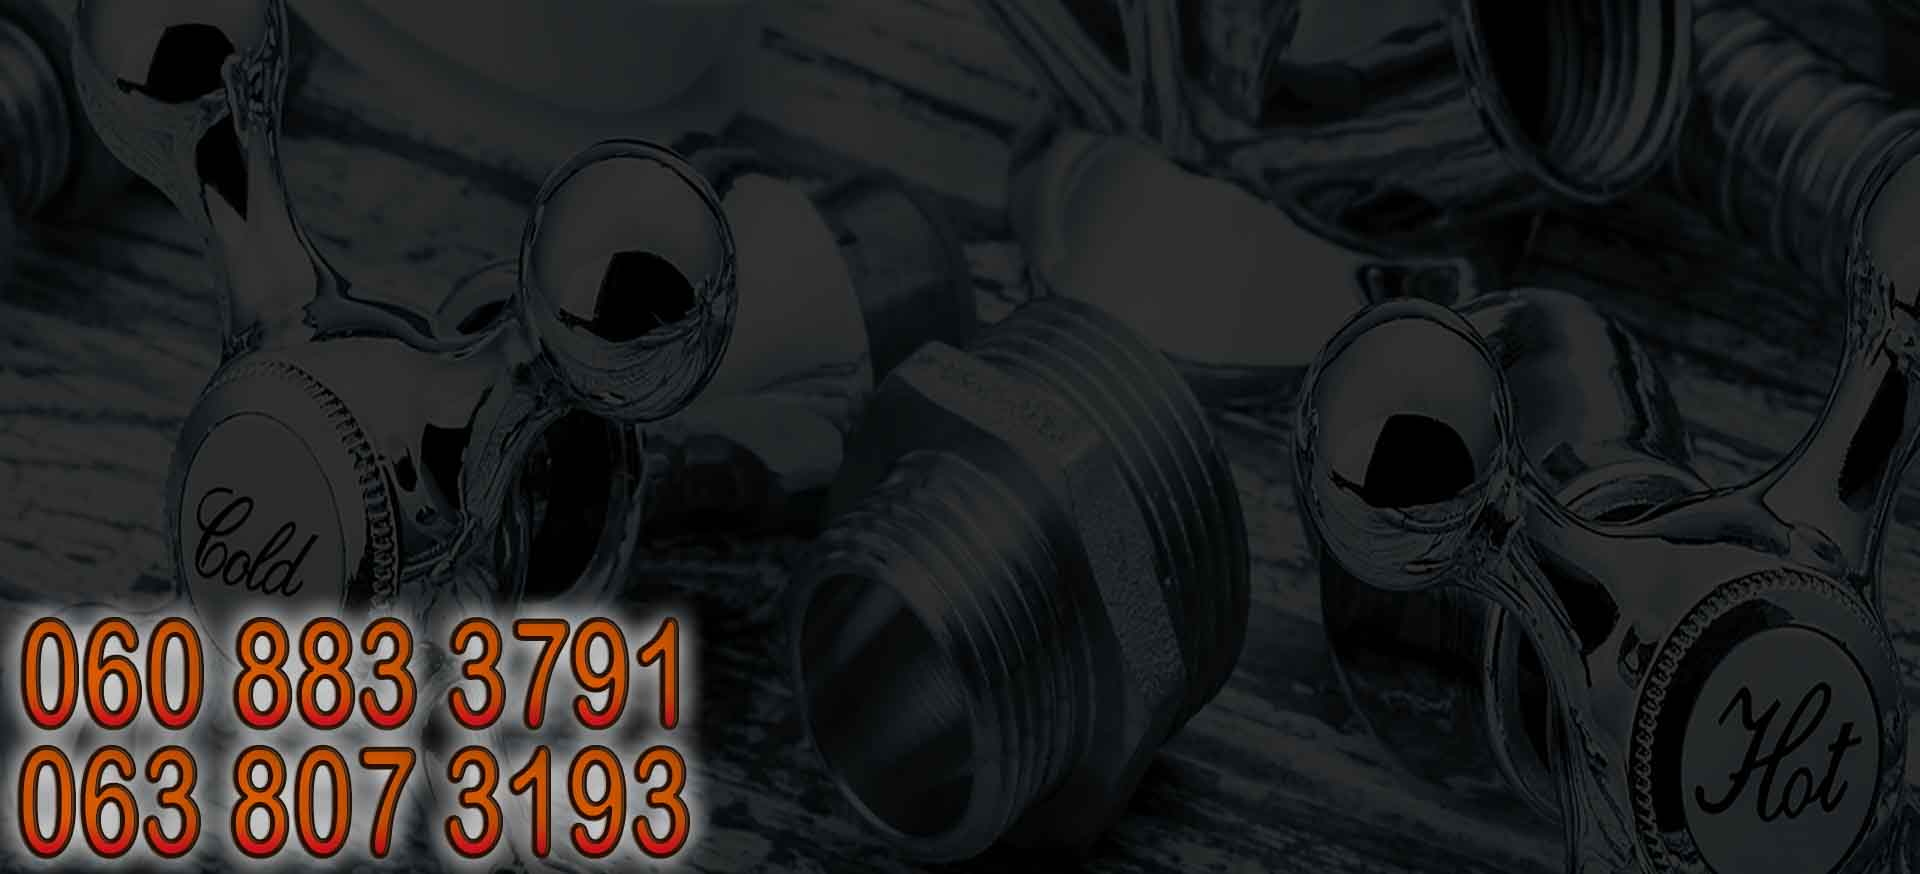 Header of Craighall plumbers